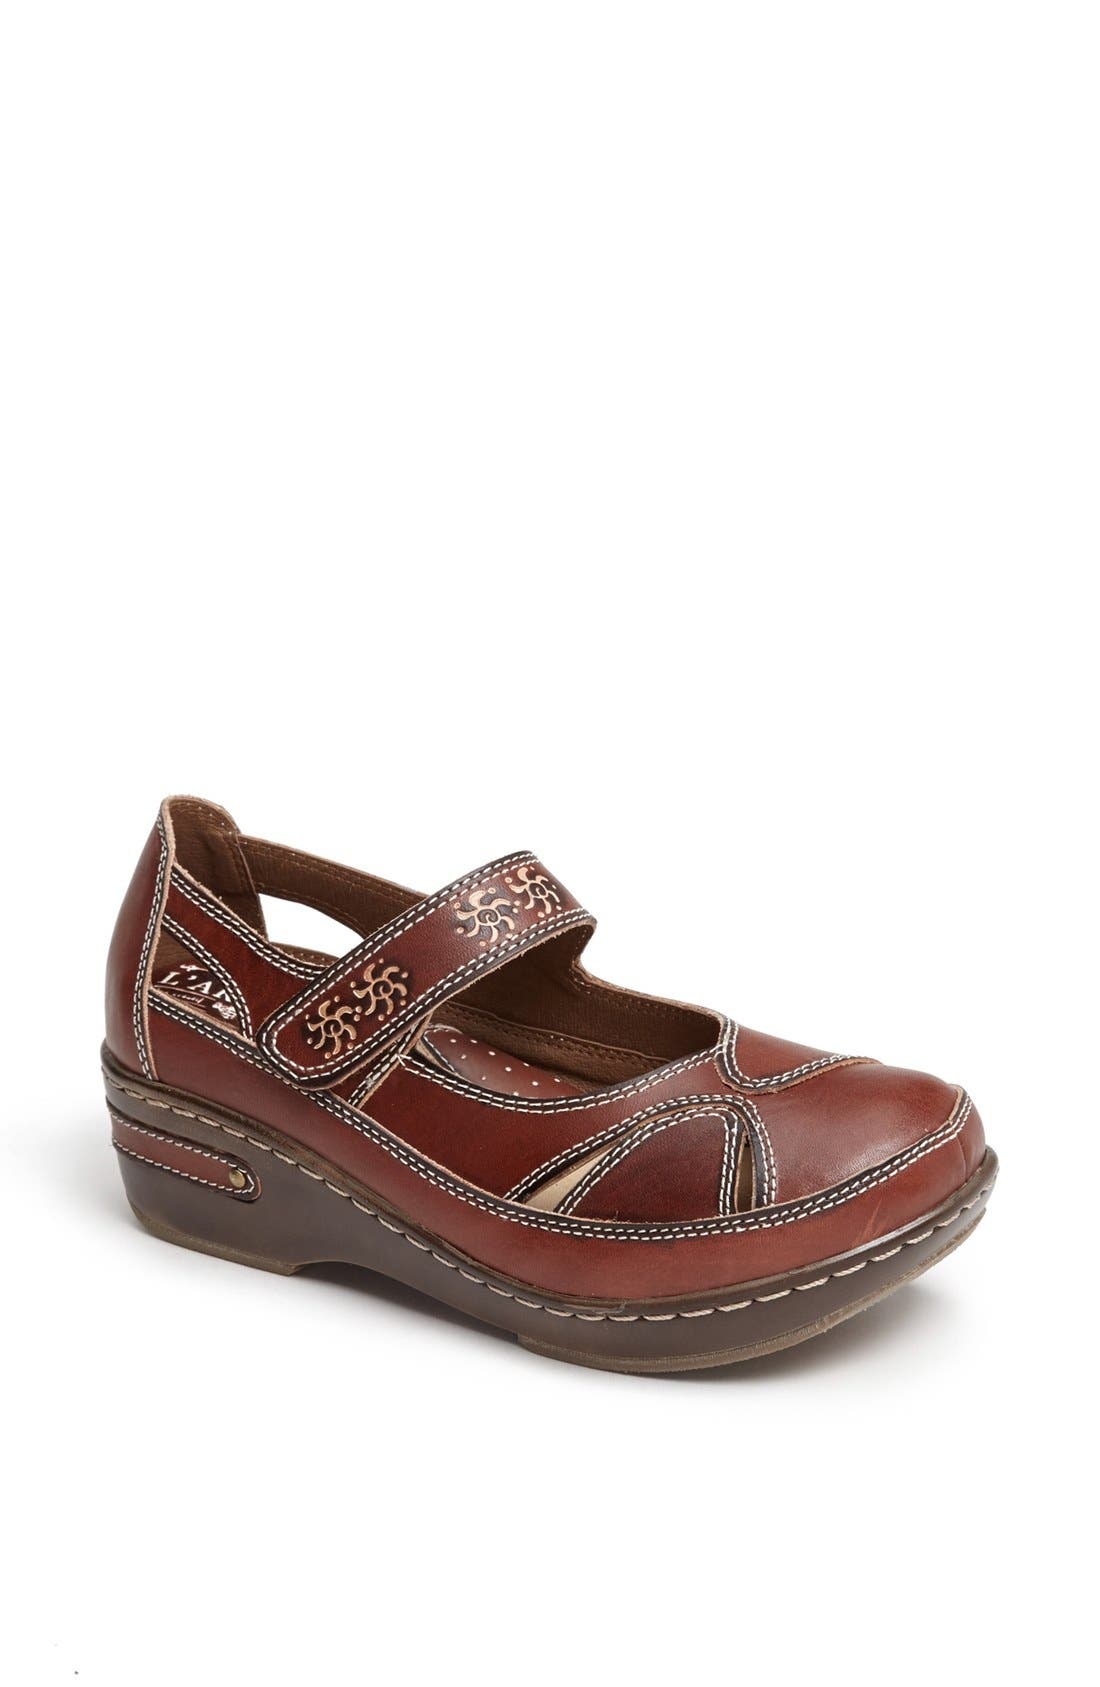 Alternate Image 1 Selected - Spring Step 'Sugar' Mary Jane Flat